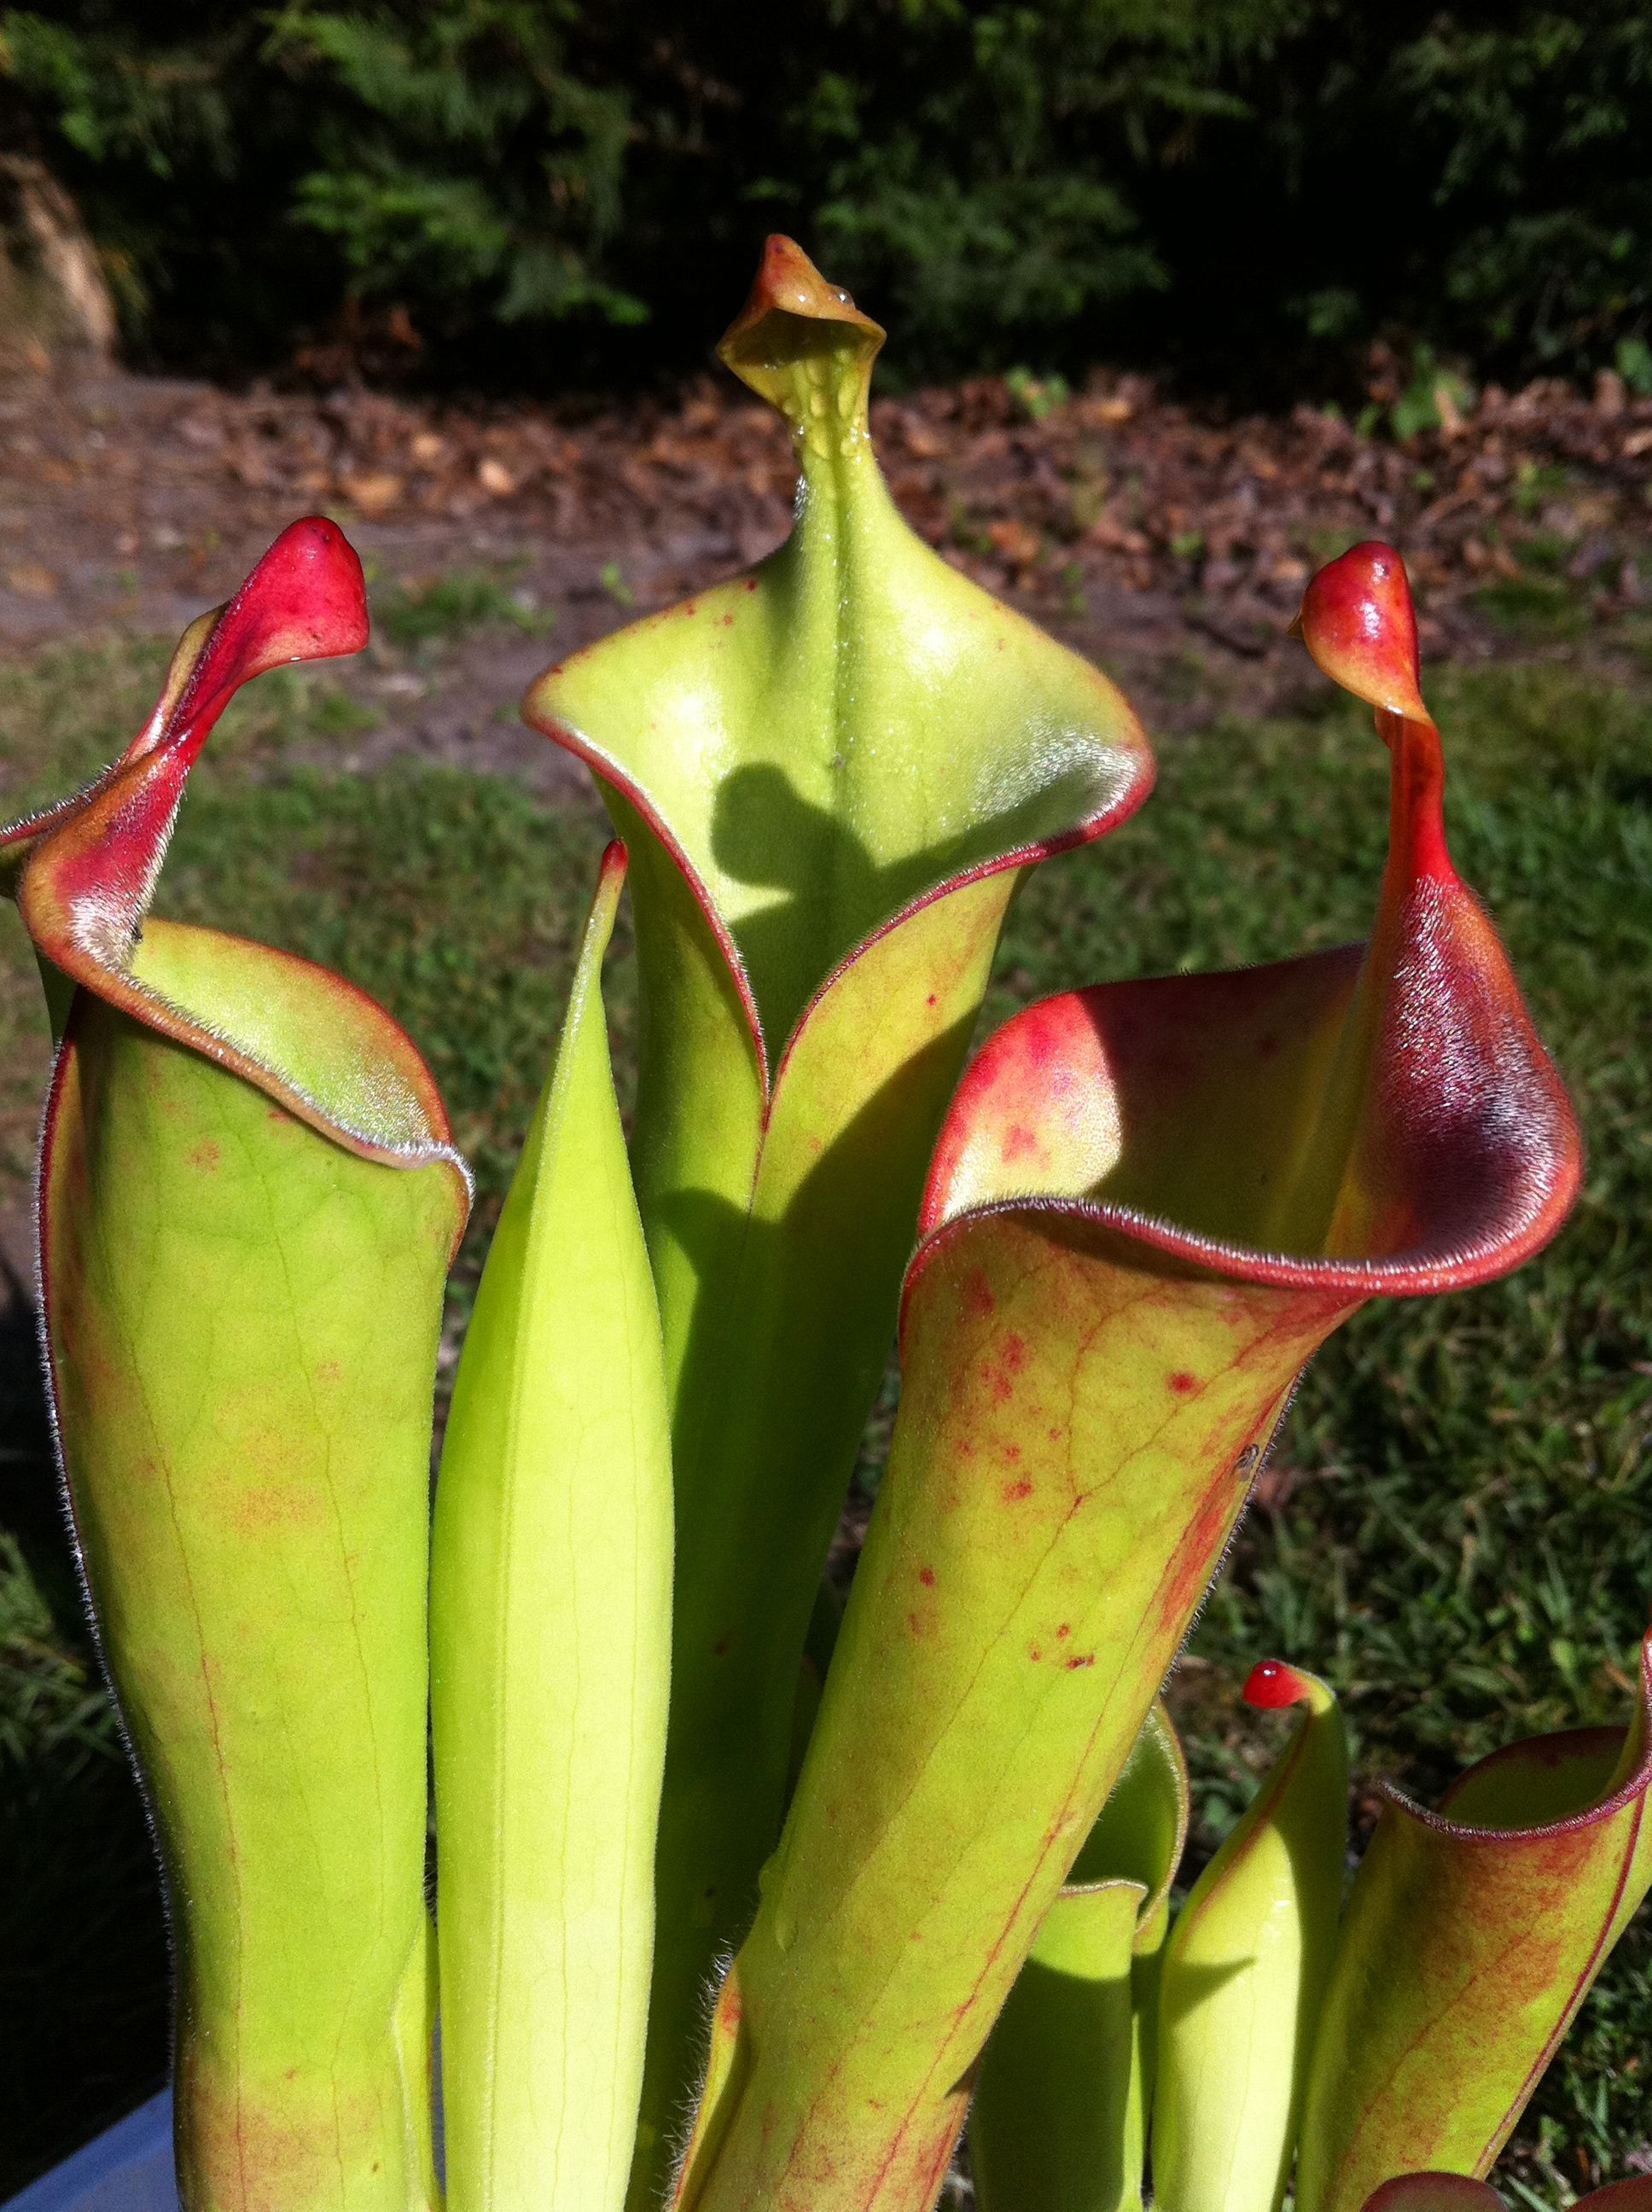 heliamphora (photos) 738c